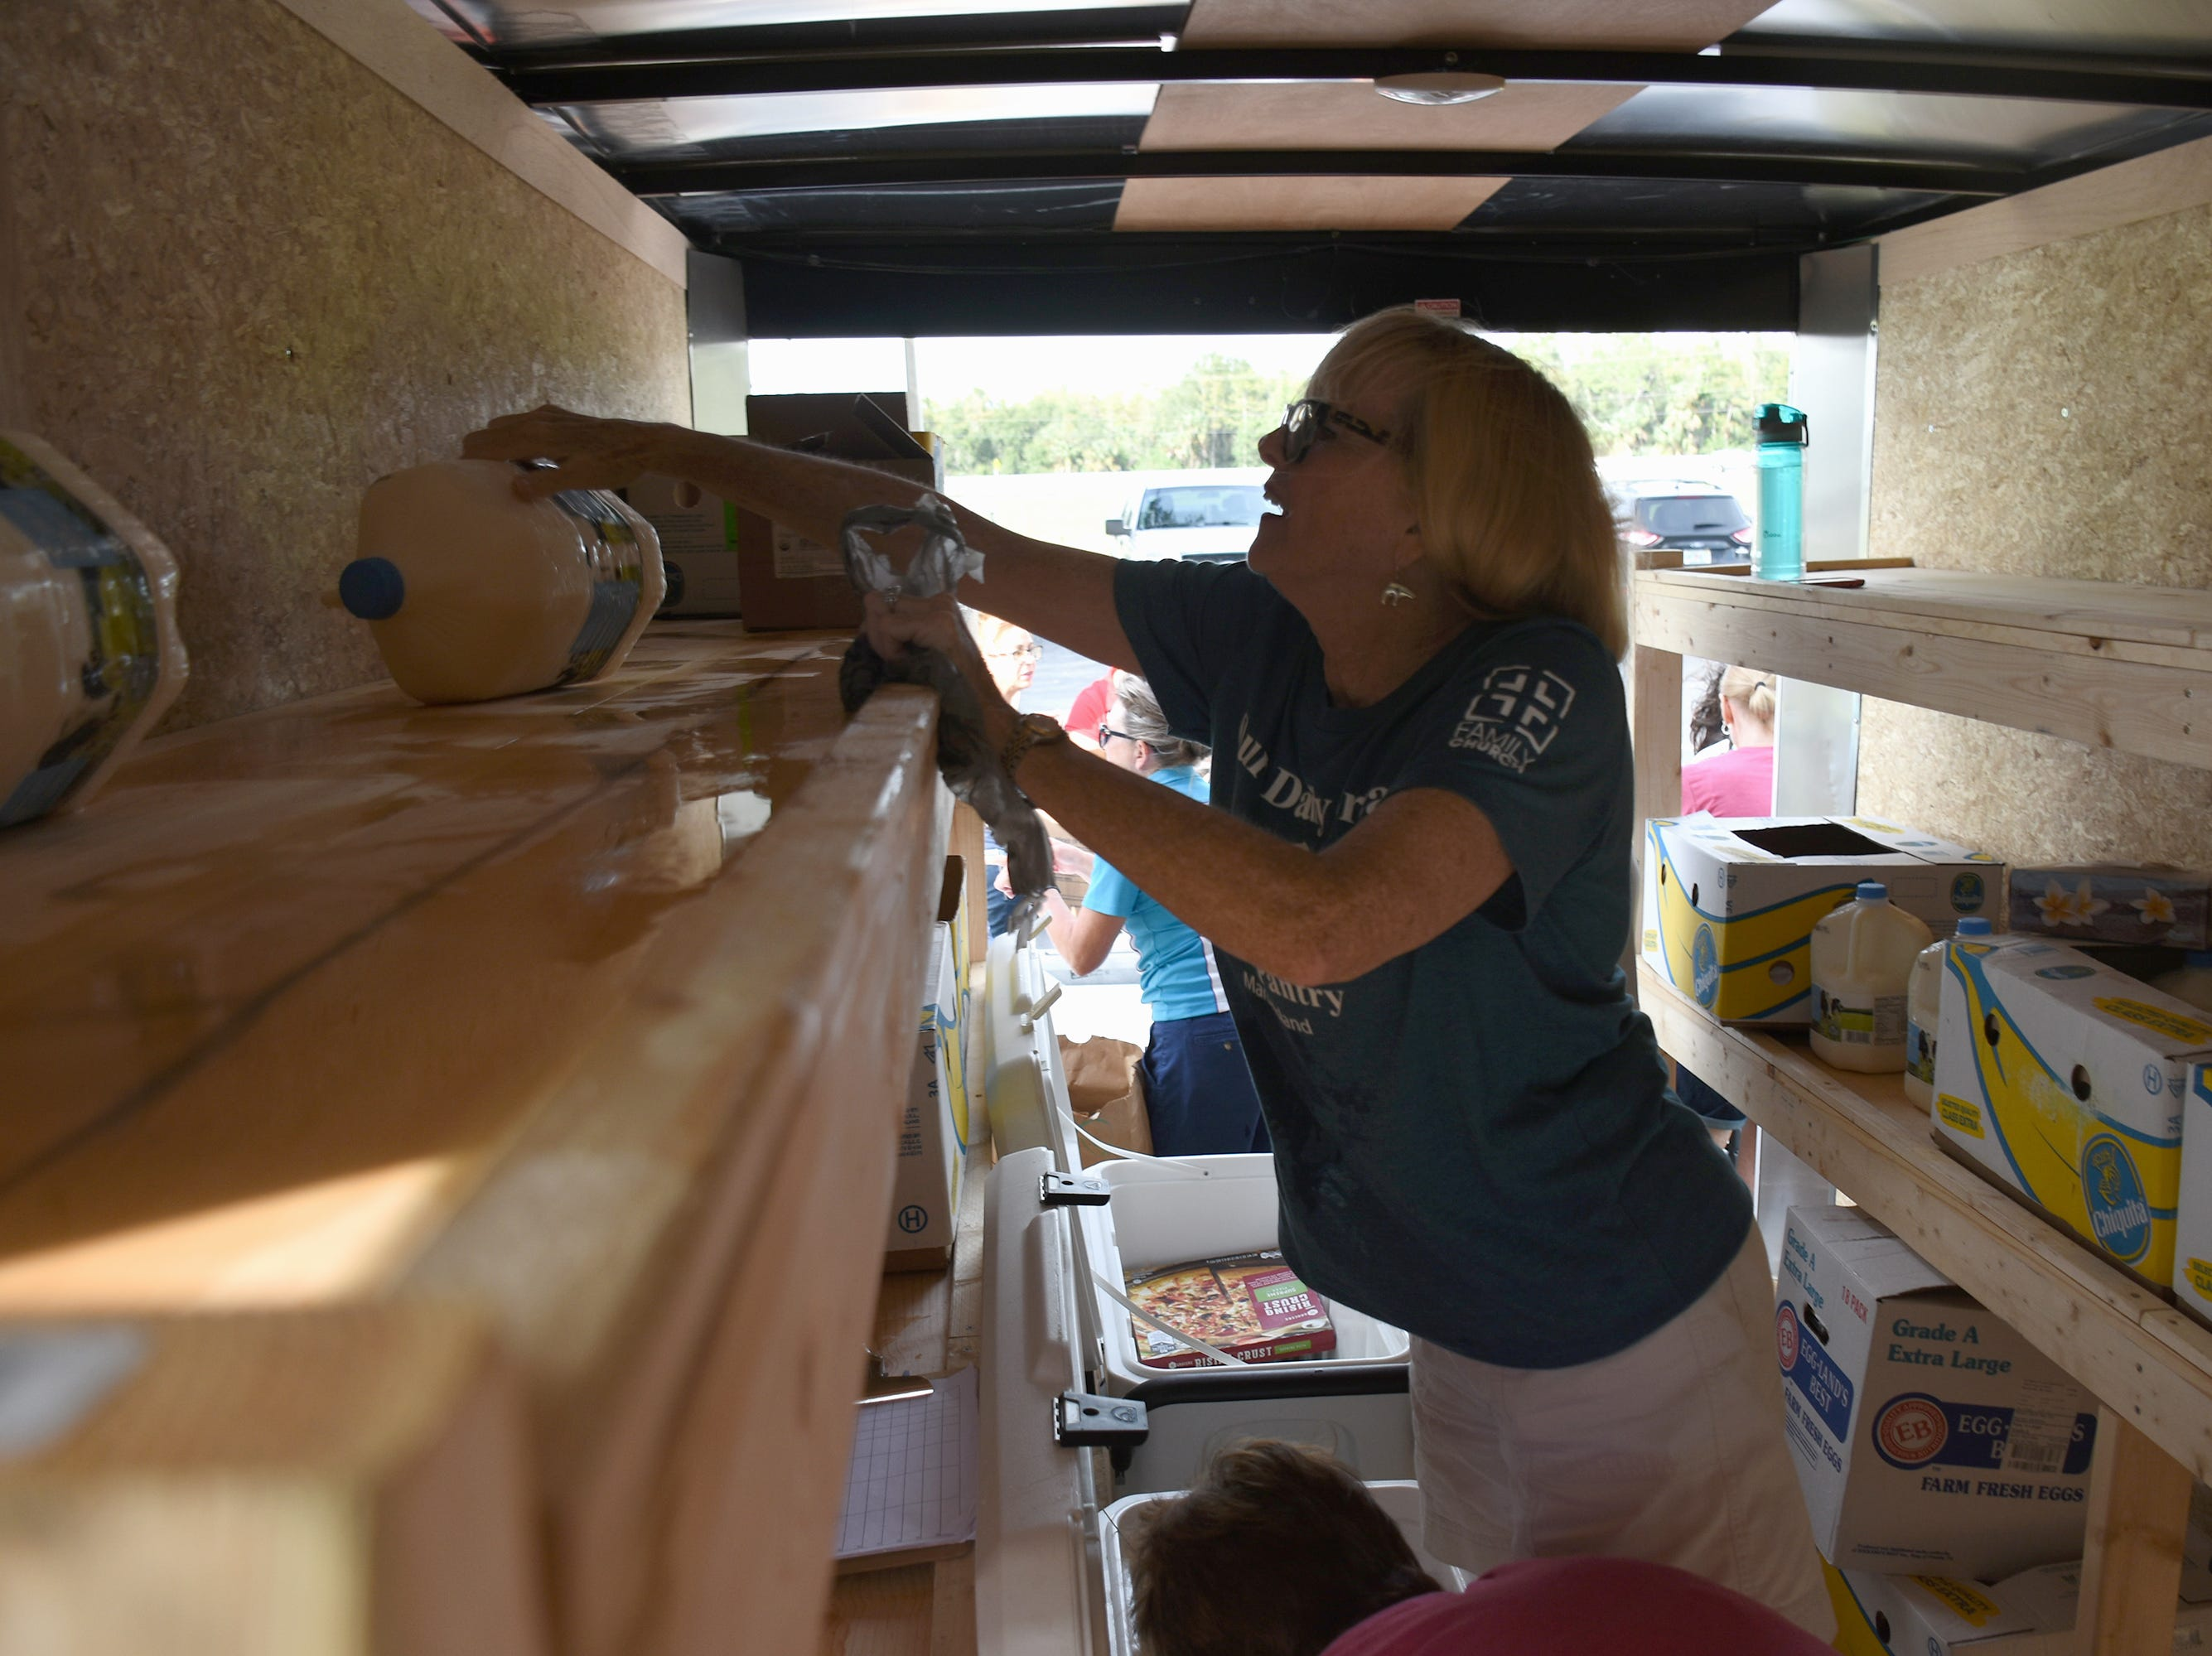 Patti Porter pulls more supplies out of the food pantry trailer. A group of Marco Island volunteers conducts a food pantry Friday afternoon at Manatee Middle School.